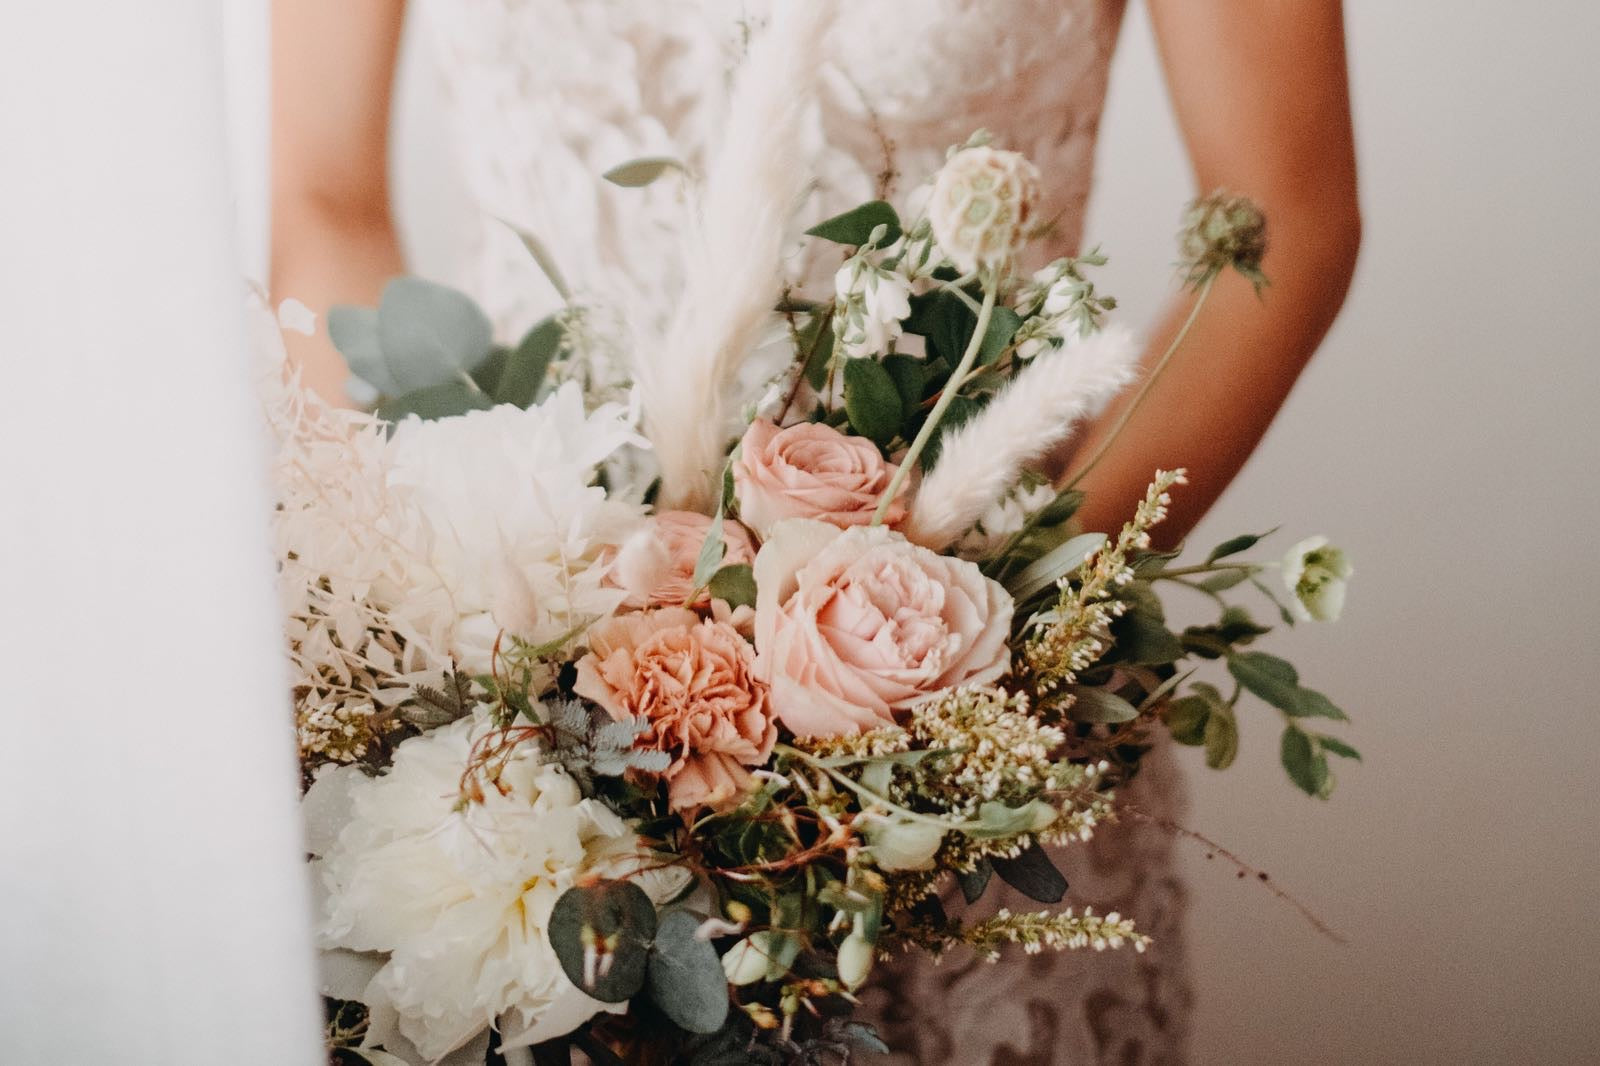 Bride personal bouquet arrangement of pink and white peonies, wax flowers, rabbit's tail